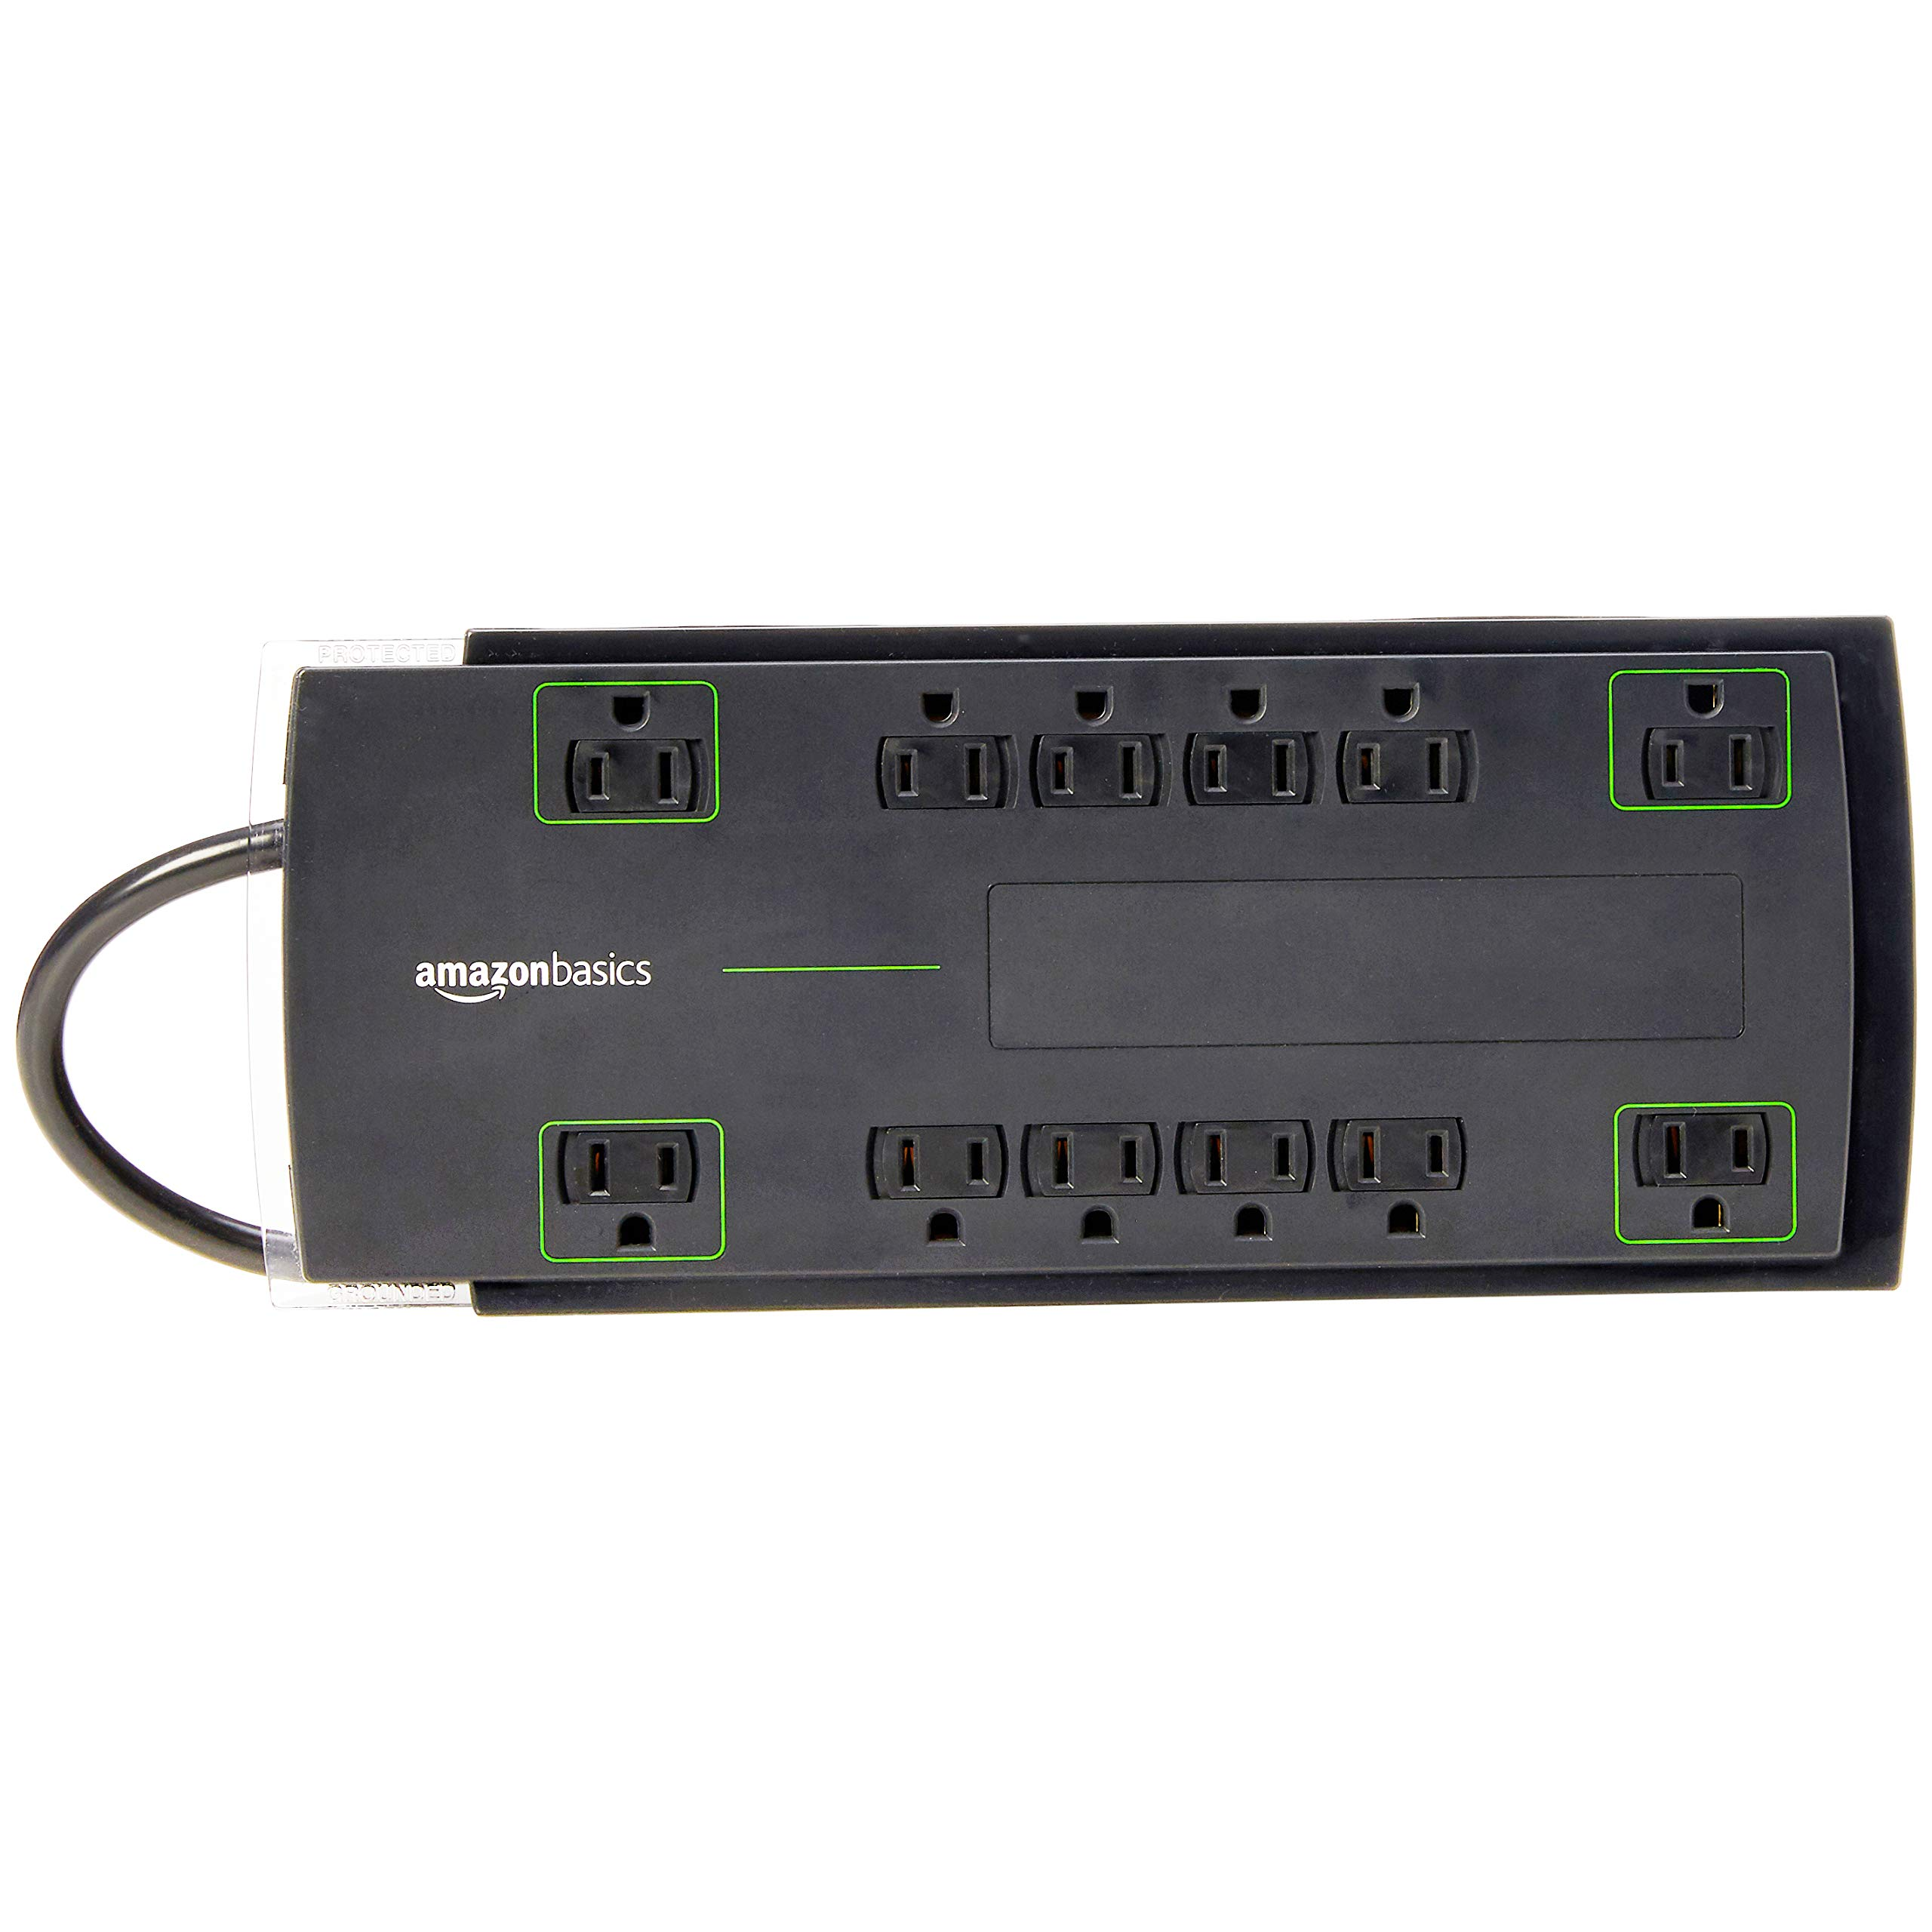 AmazonBasics 12-Outlet Power Strip Surge Protector | 4,320 Joule, 8-Foot Cord by AmazonBasics